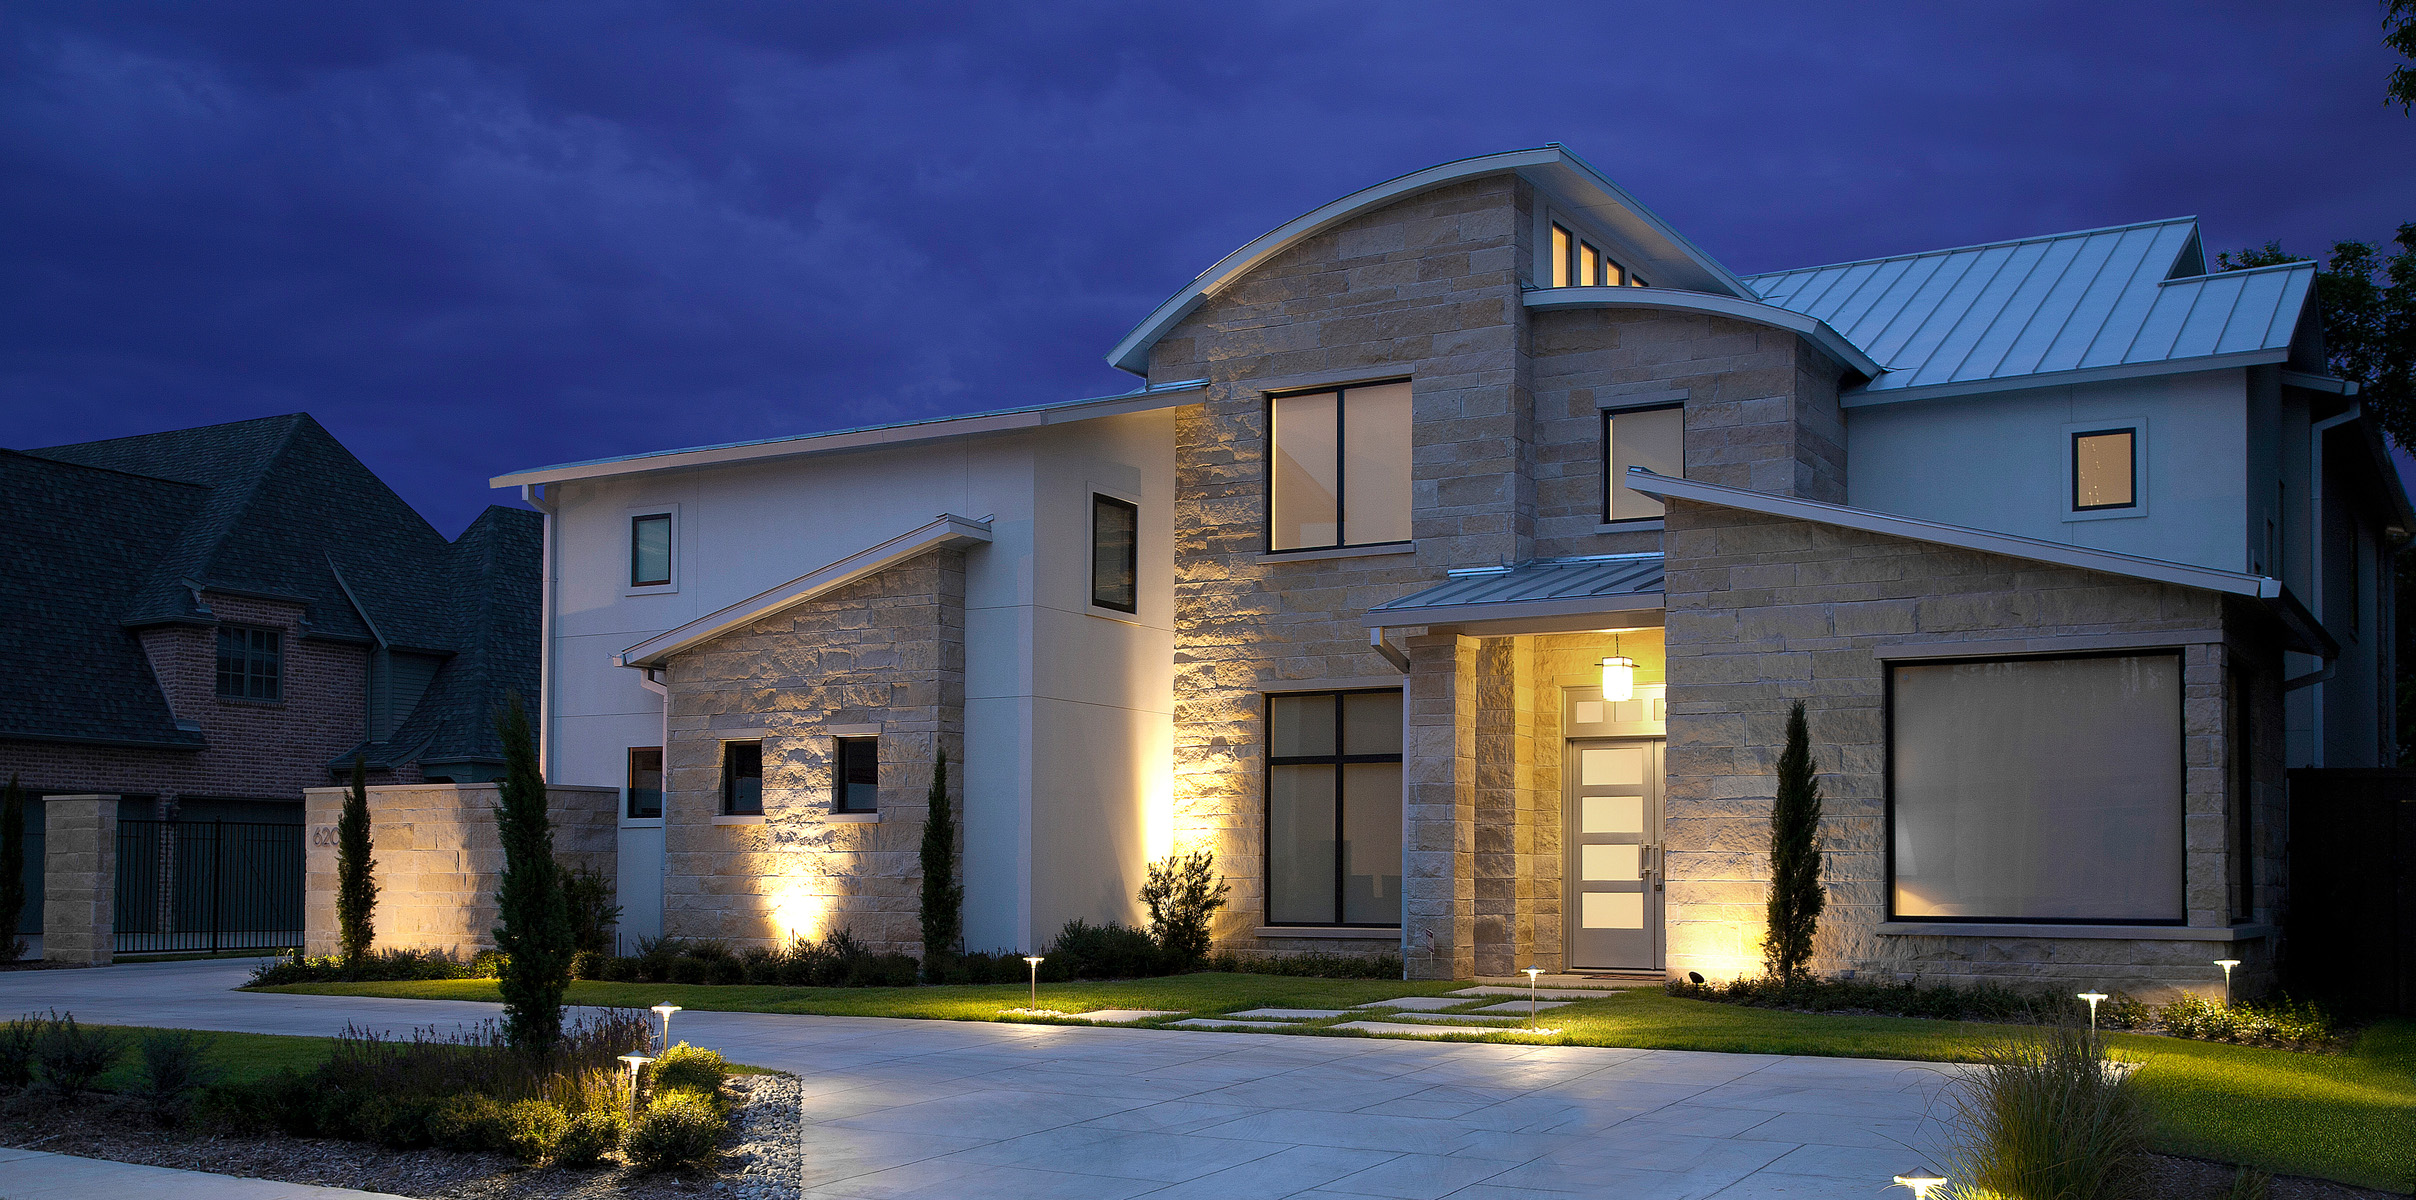 W h y buy in dallas now ondemand real estate dfw residential real estate professionals